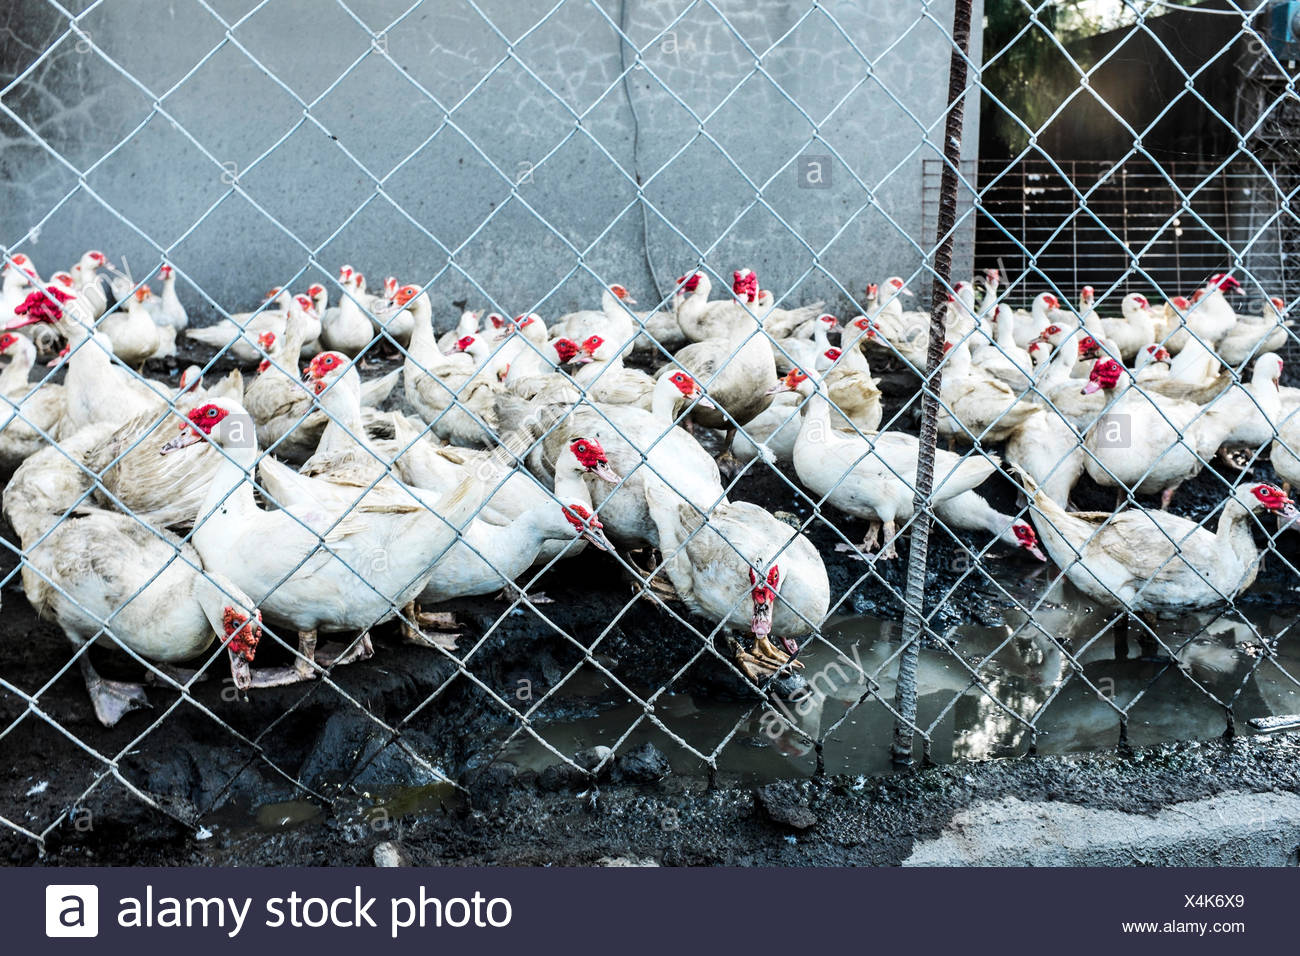 Hens In Coop - Stock Image